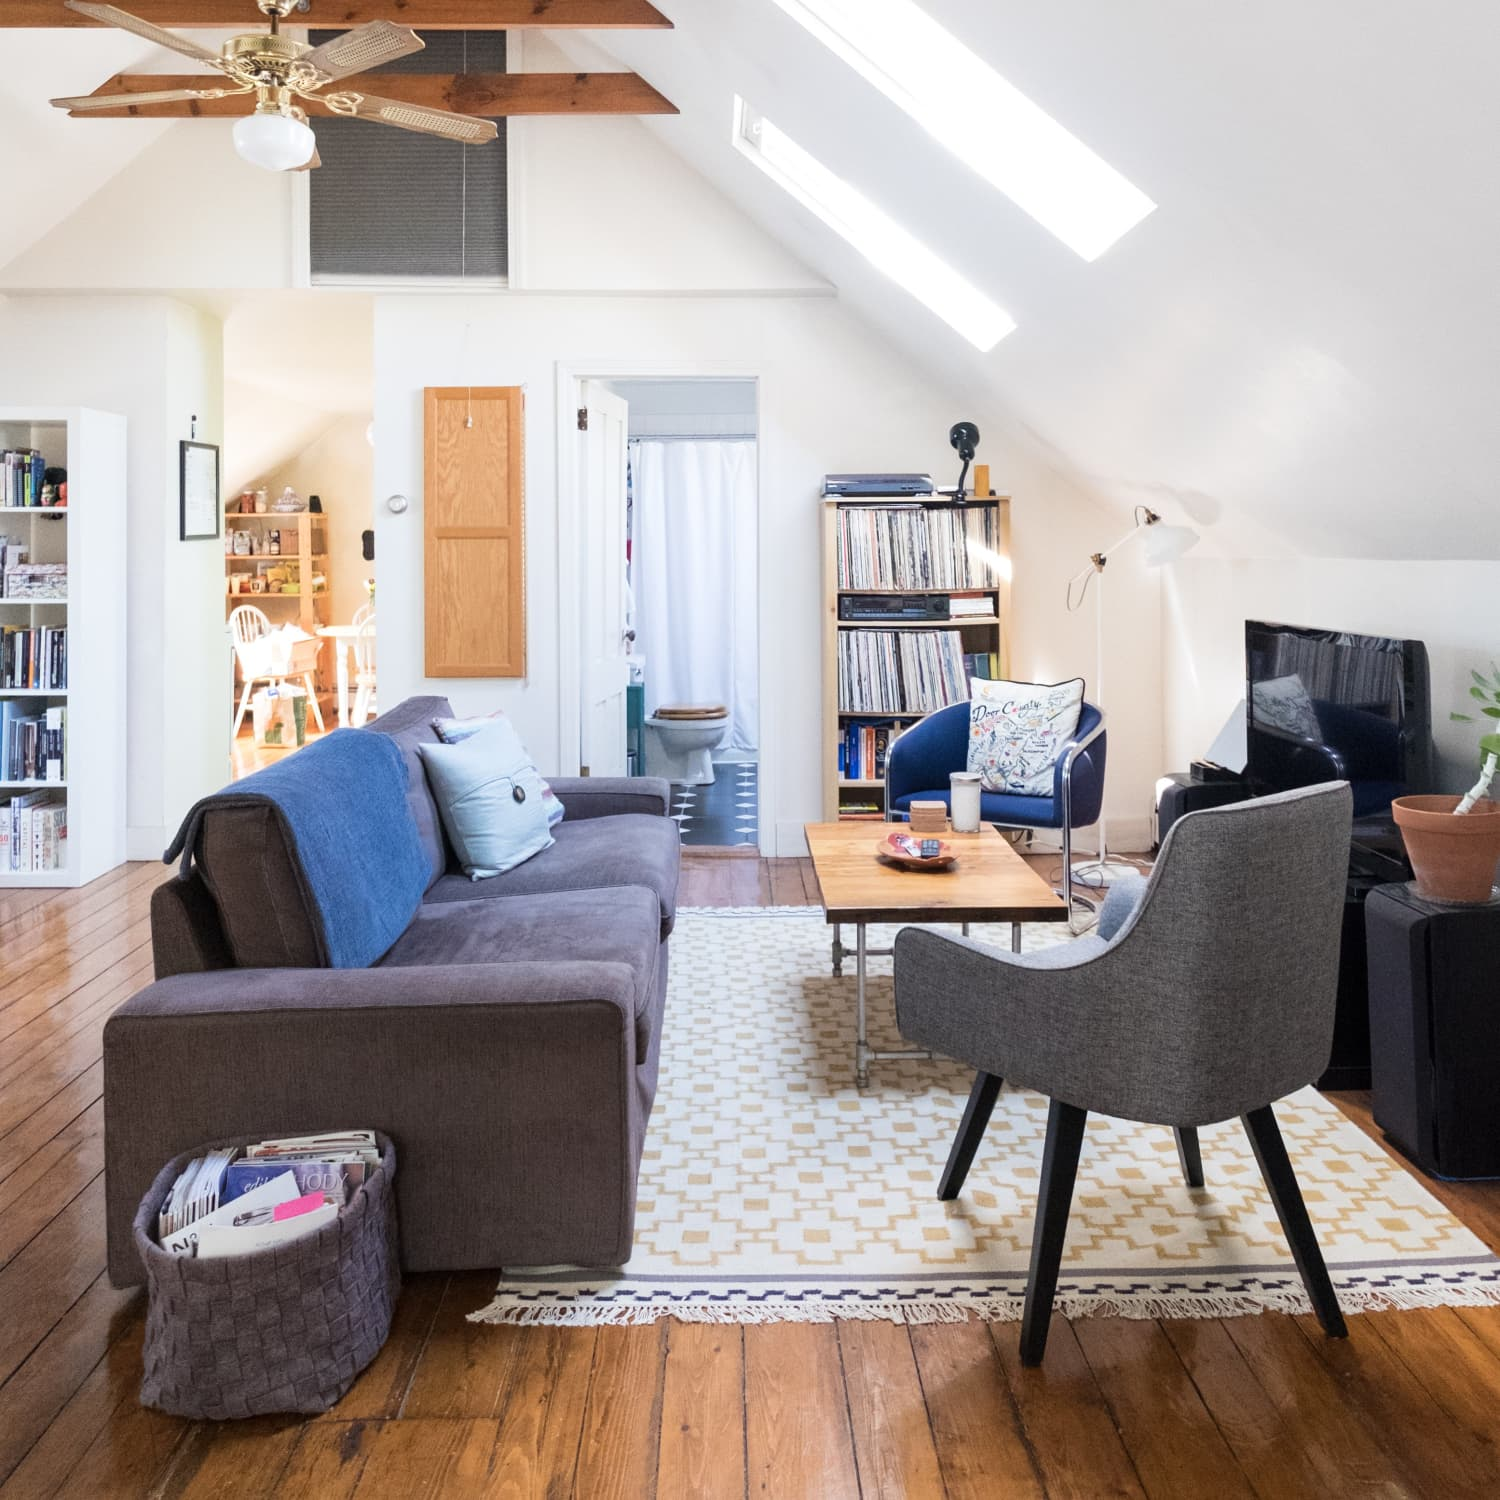 House Tour: Airy Attic Apartment in Providence | Apartment